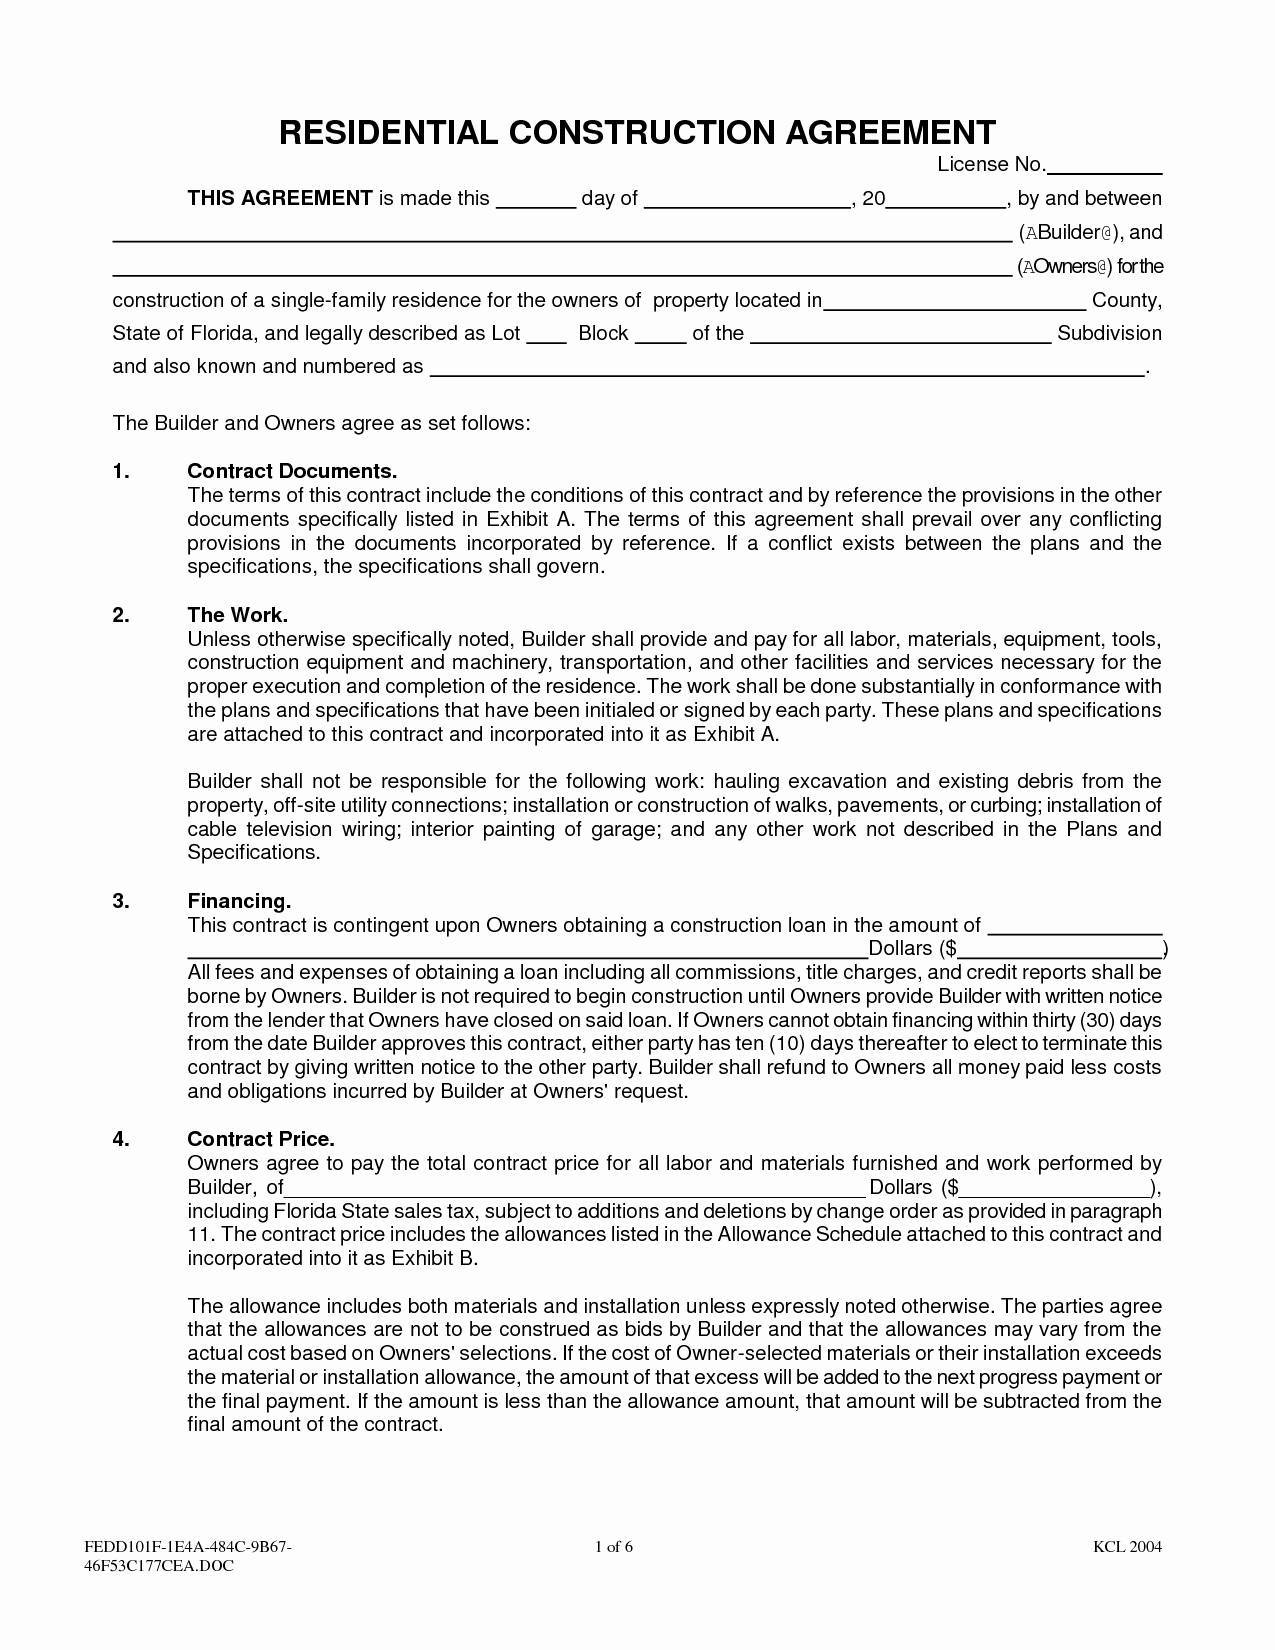 Interior design letter of agreement template examples - Interior design contract template ...